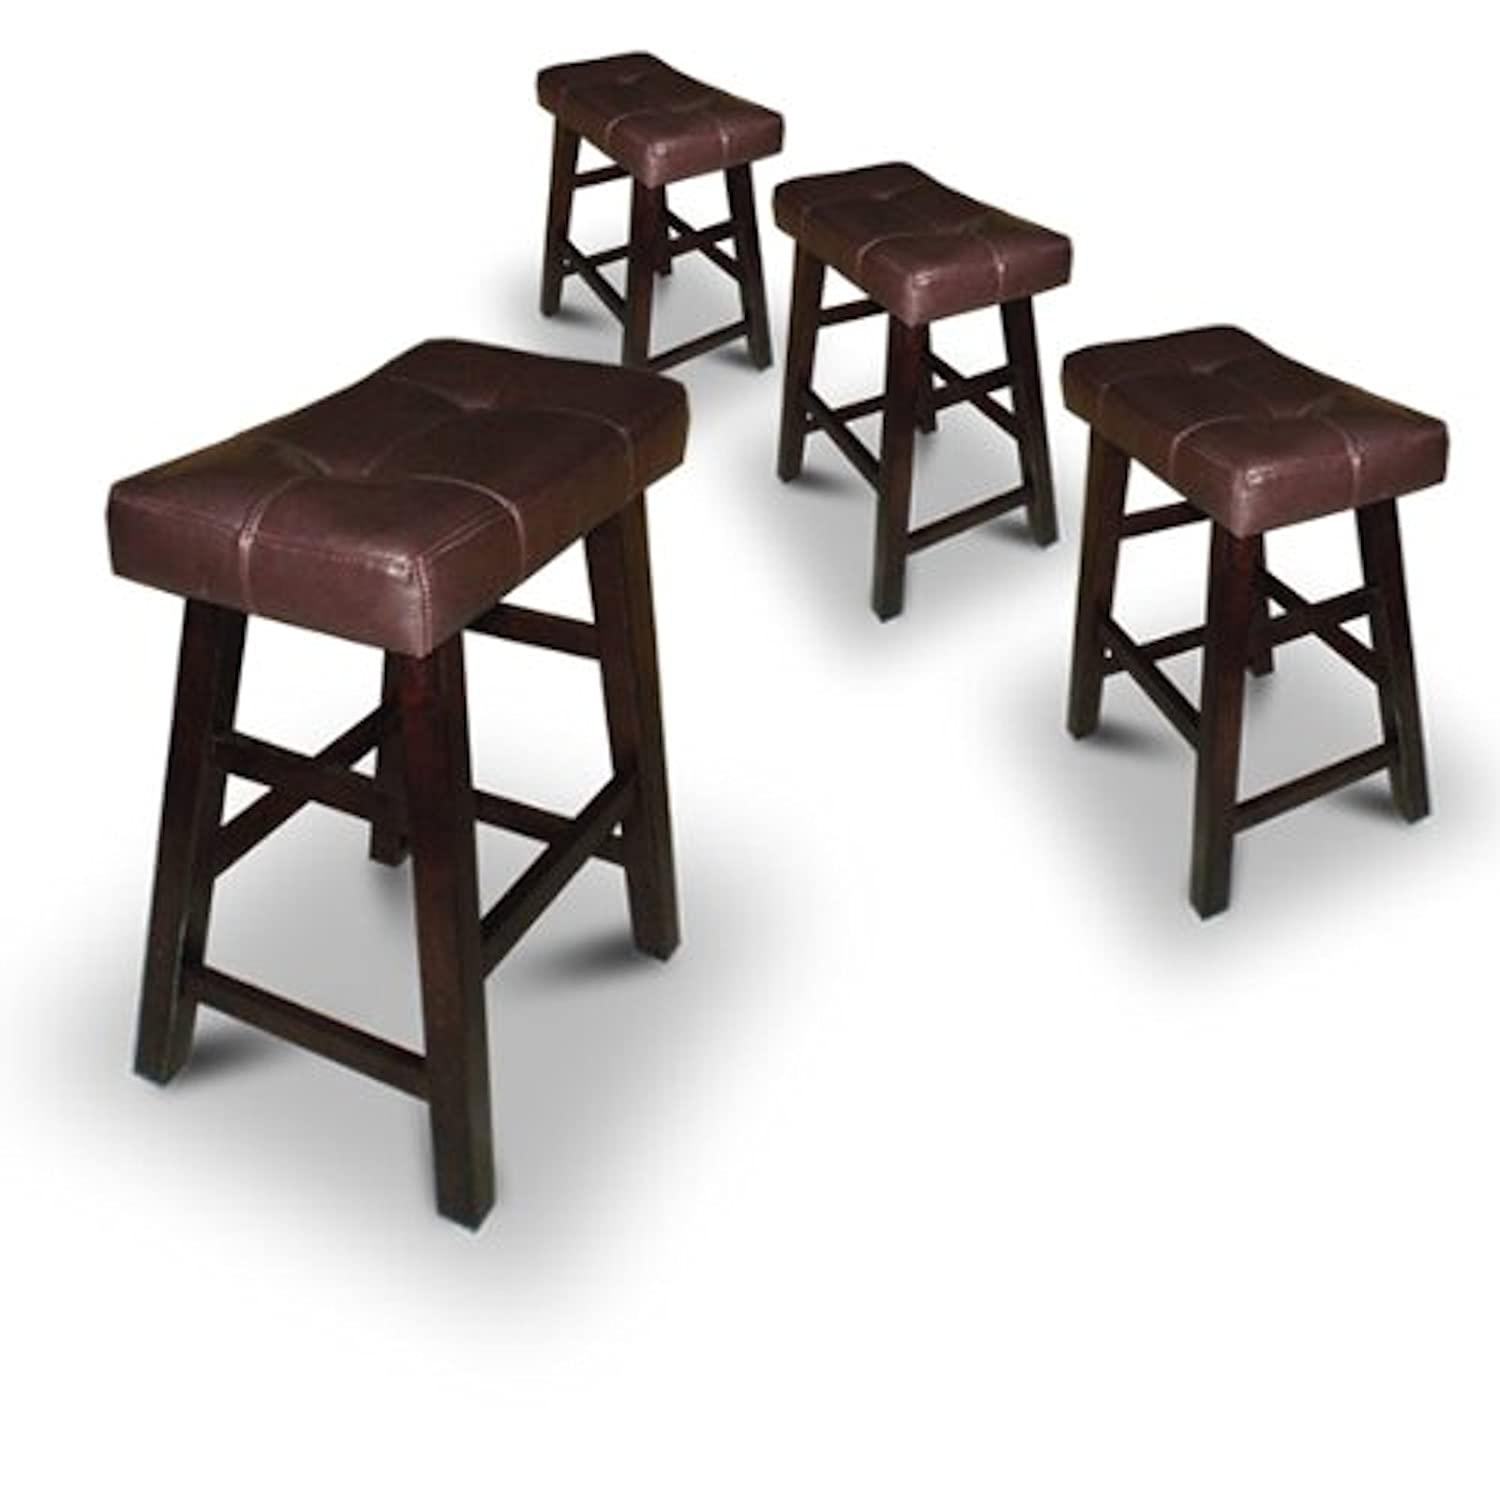 Amazon com legacy decor 4 24 saddle back espresso bar stools kitchen dining